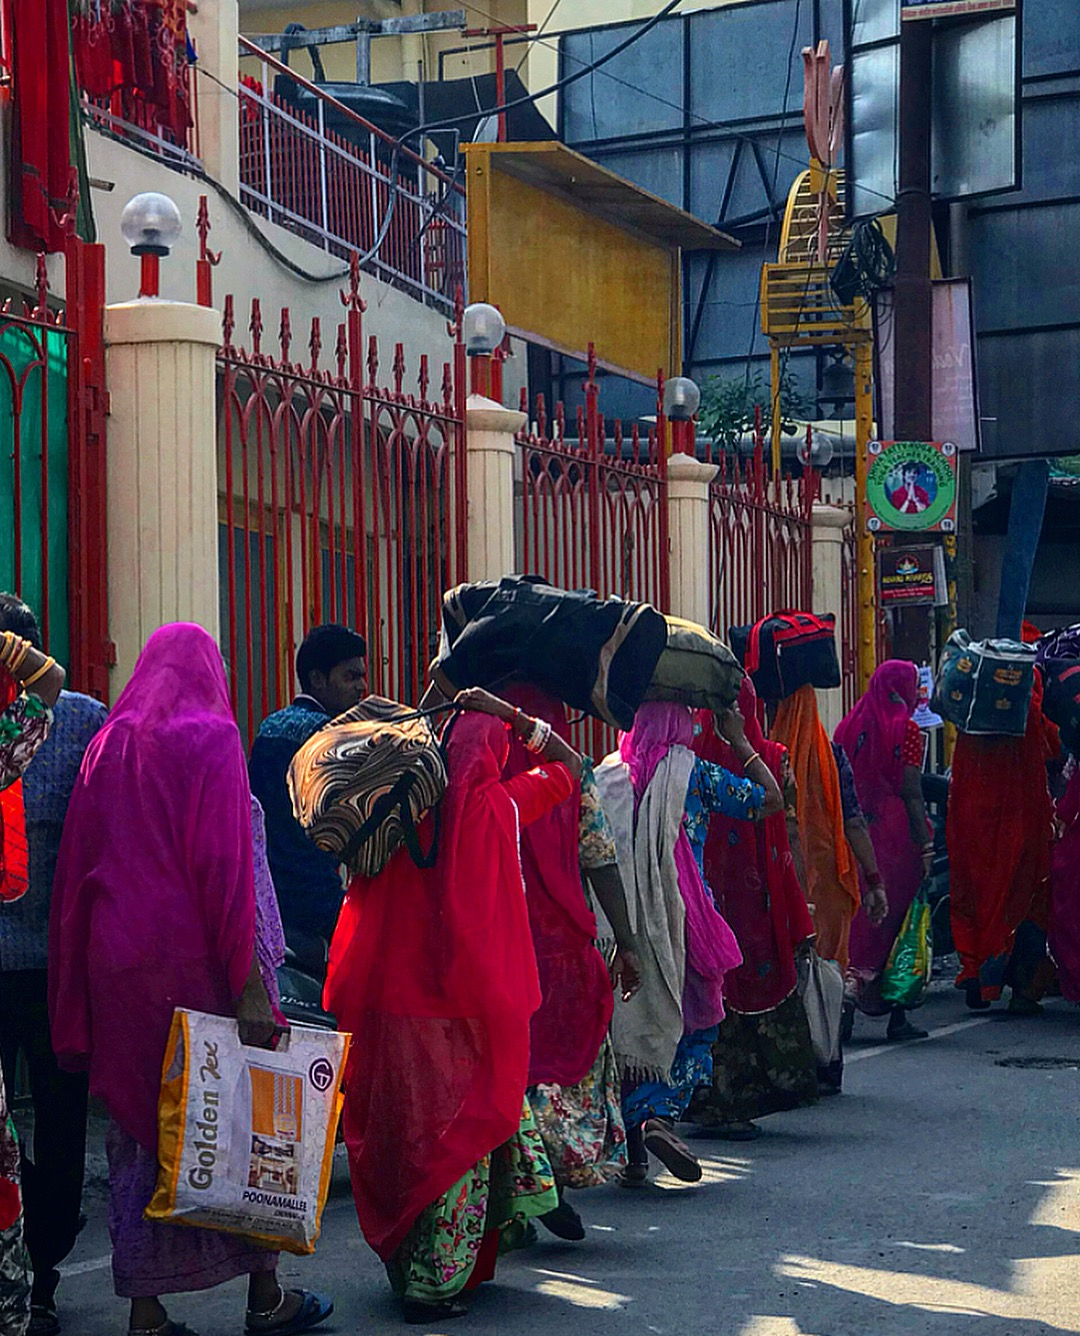 The Indian women of Rishikesh and the art of balancing bags.